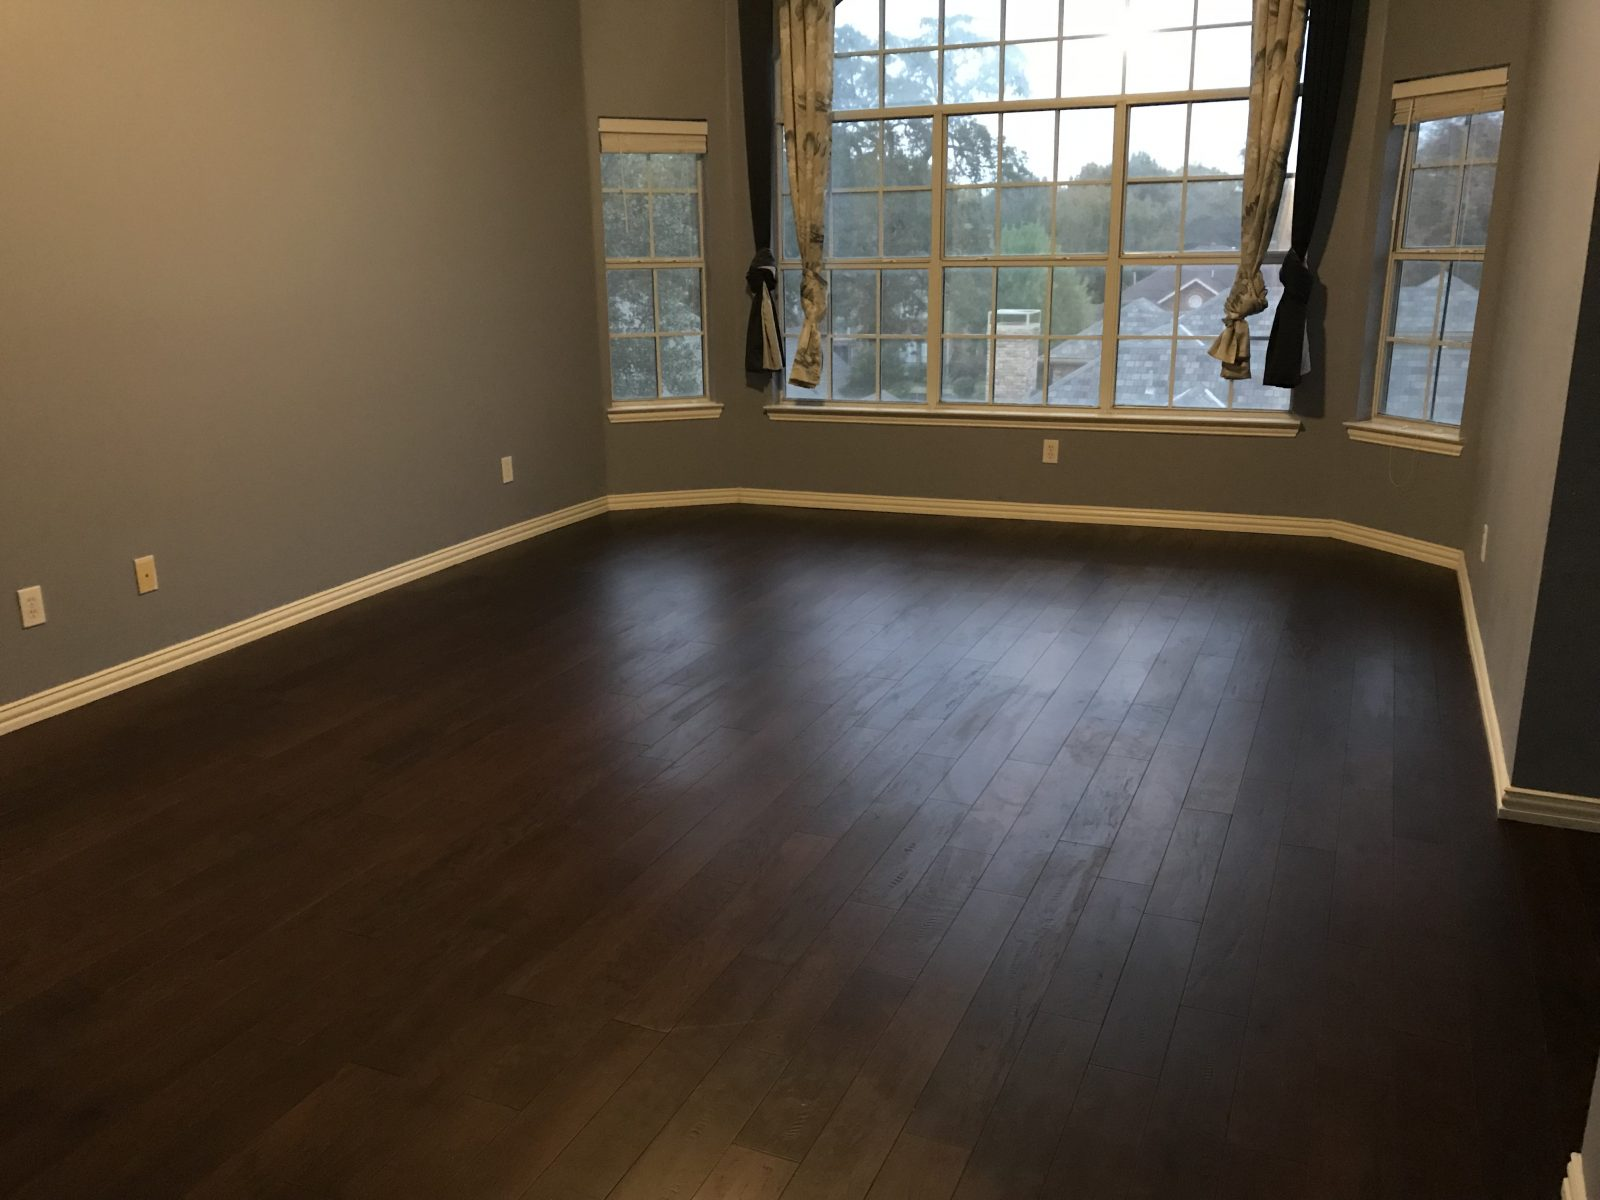 New Engineered Wood Floors in Coppell Texas